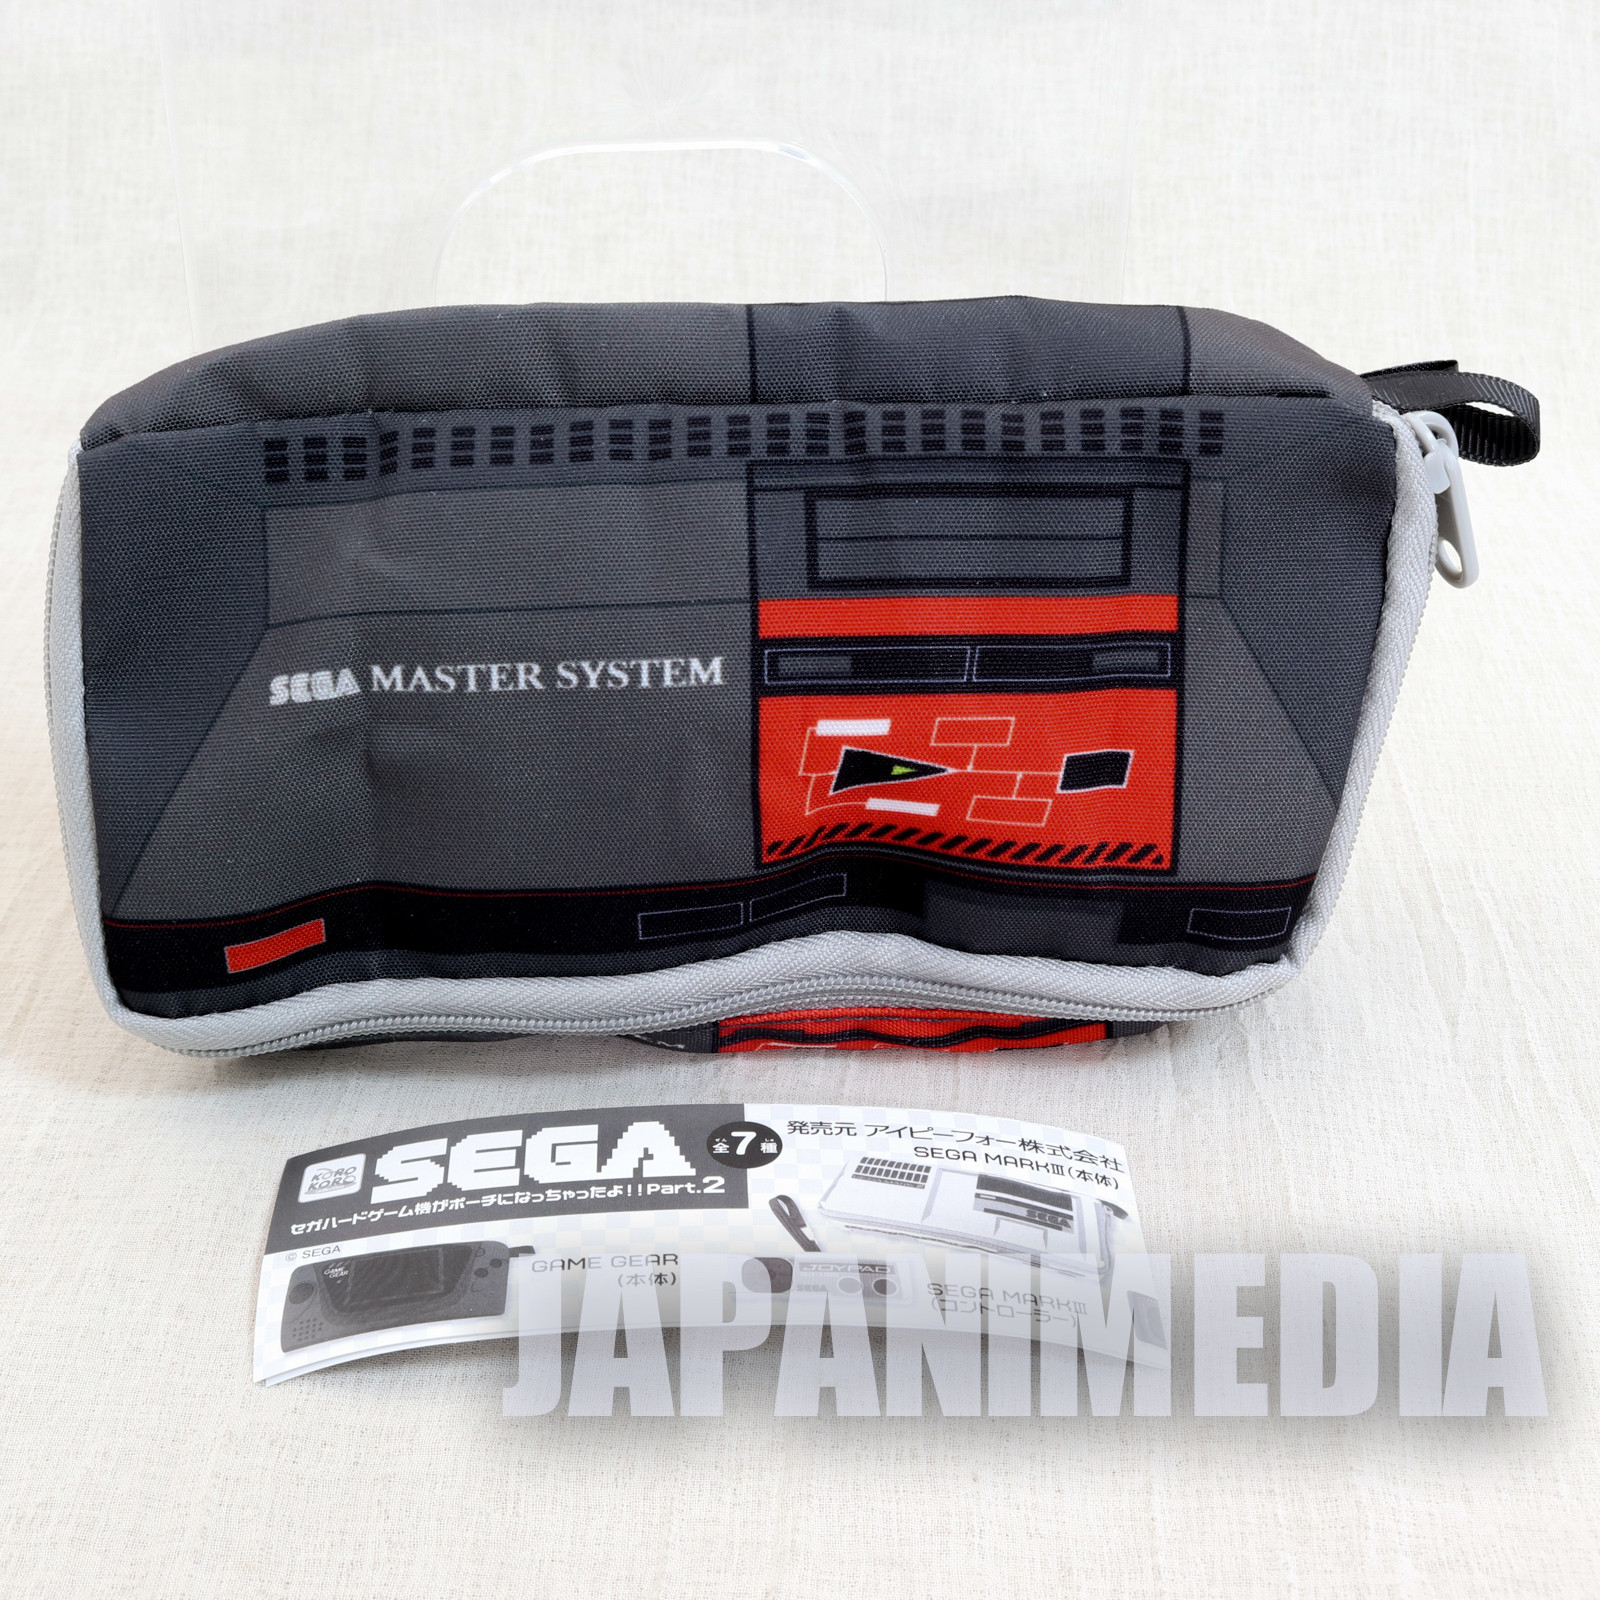 Master System SEGA Game Console Machine Type Pouch Case JAPAN GAME